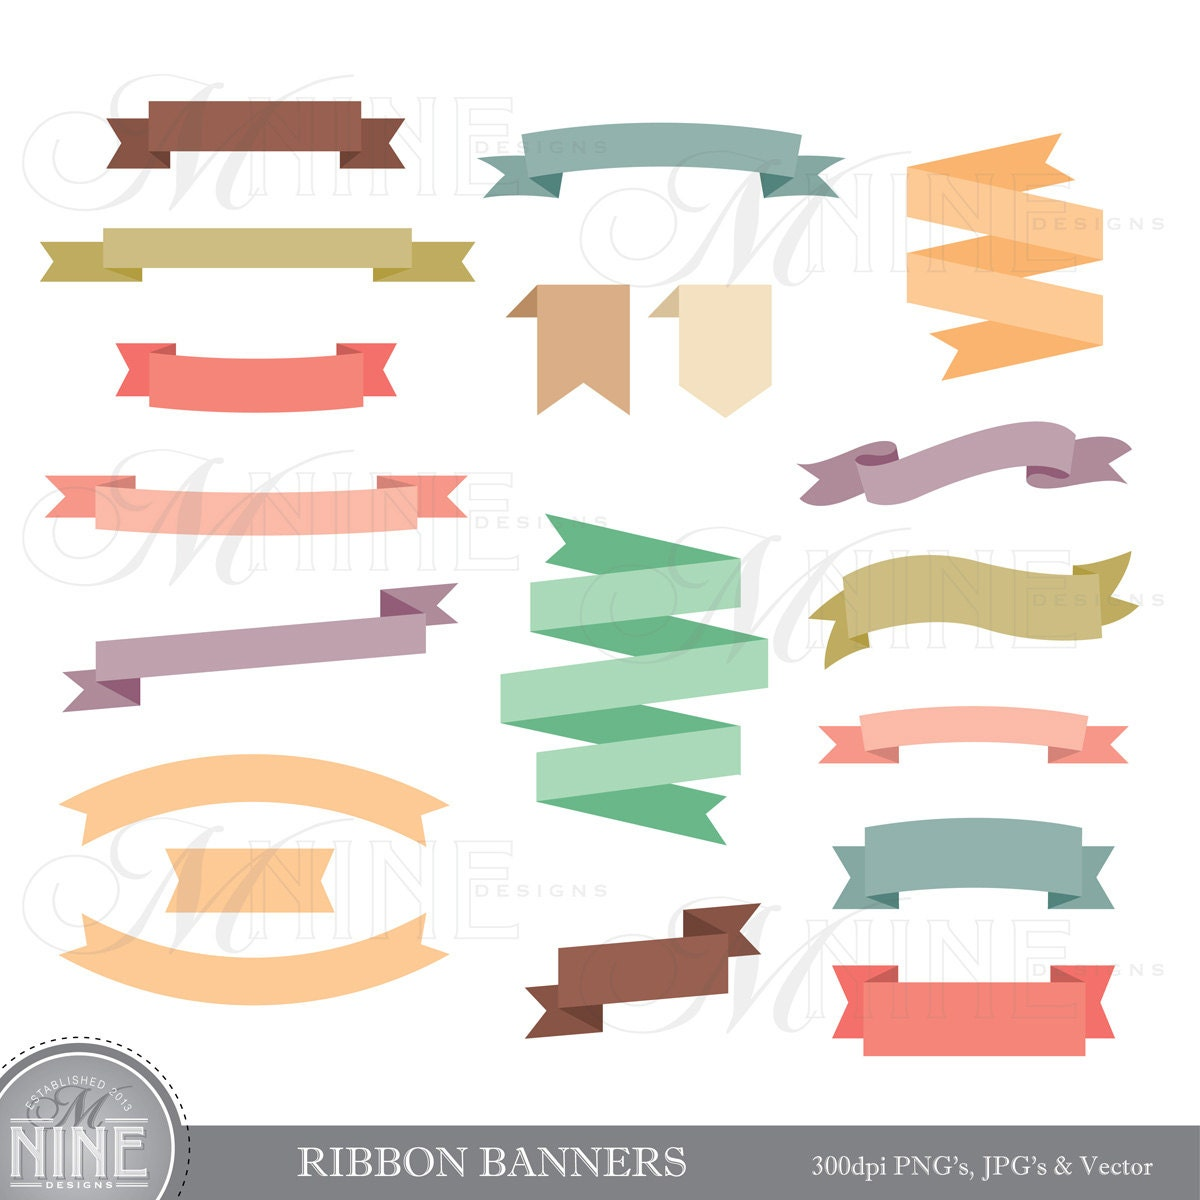 Brand new RIBBON BANNERS Clipart Clip Art Vector Art File Instant WI75